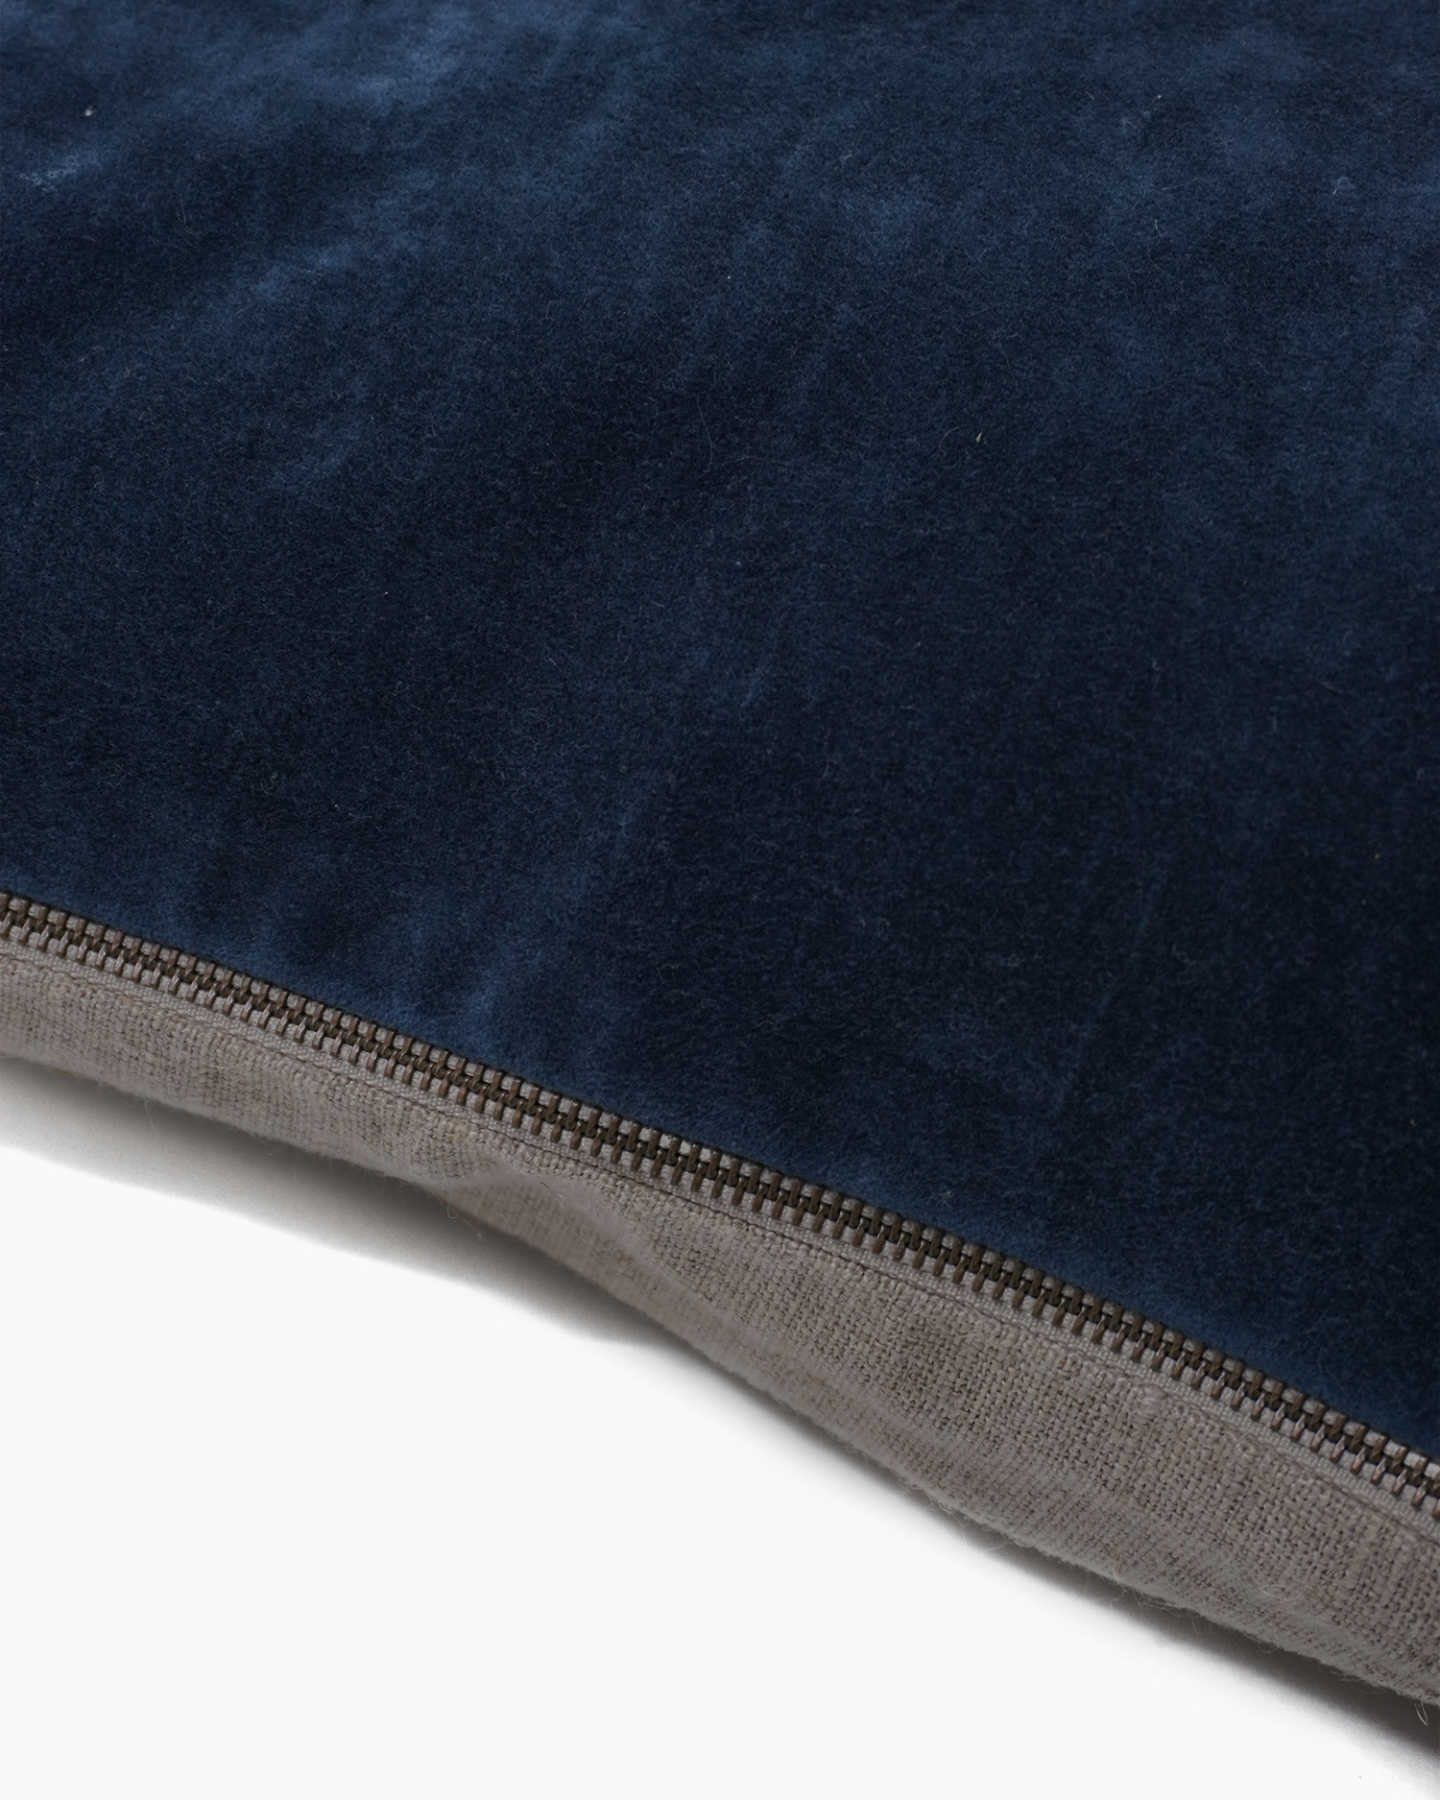 Plush Velvet Pillow Cover  - Navy - 1 - Thumbnail